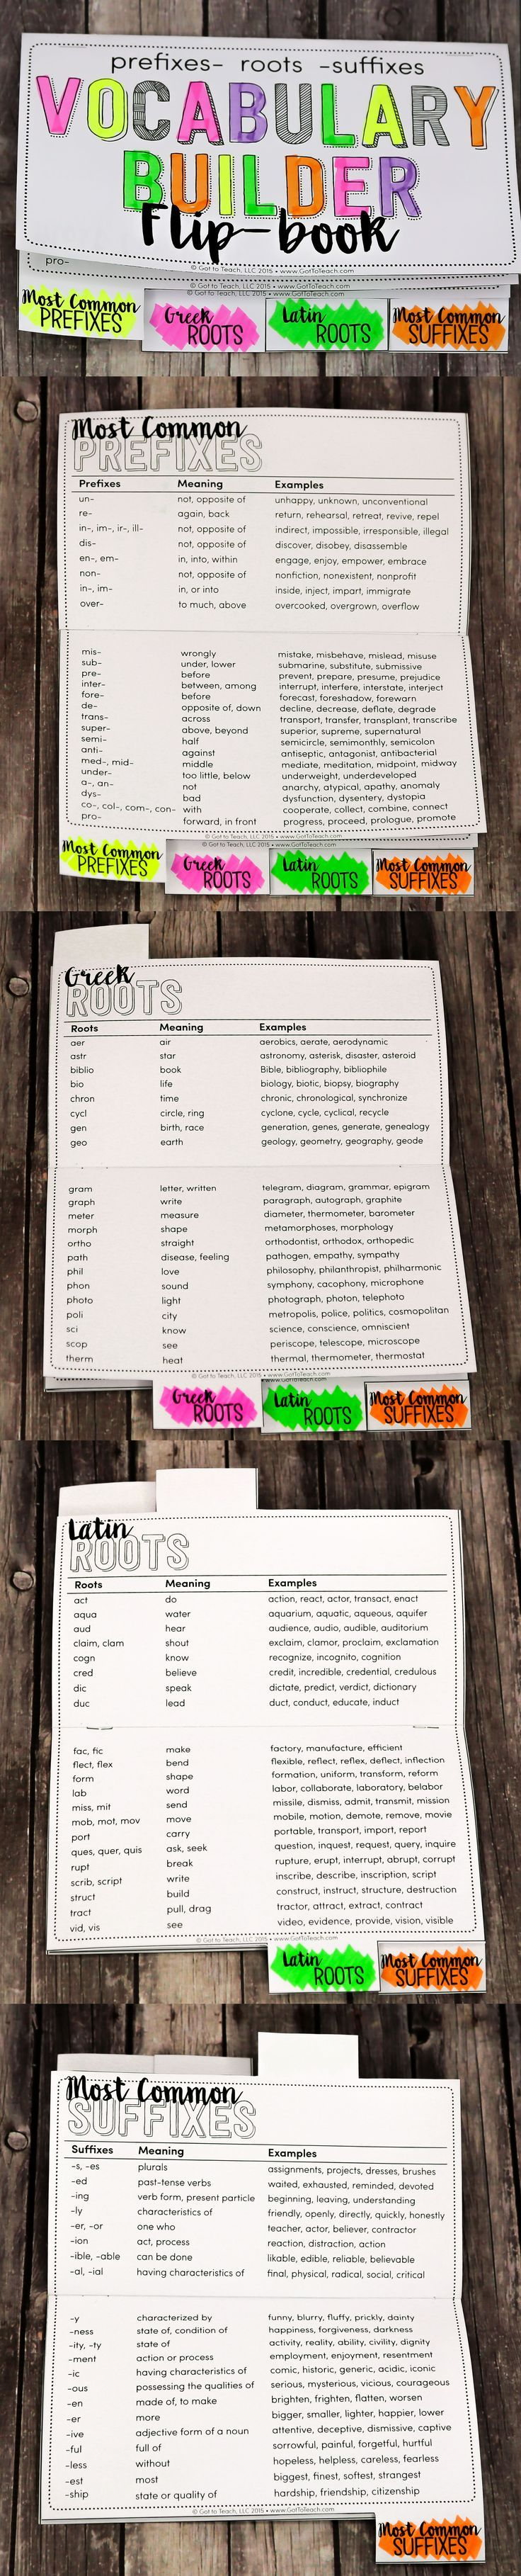 FREE Vocabulary Builder Flip-book when you sign up for my newsletter! Excellent reference for the most common prefixes, roots, and suffixes!